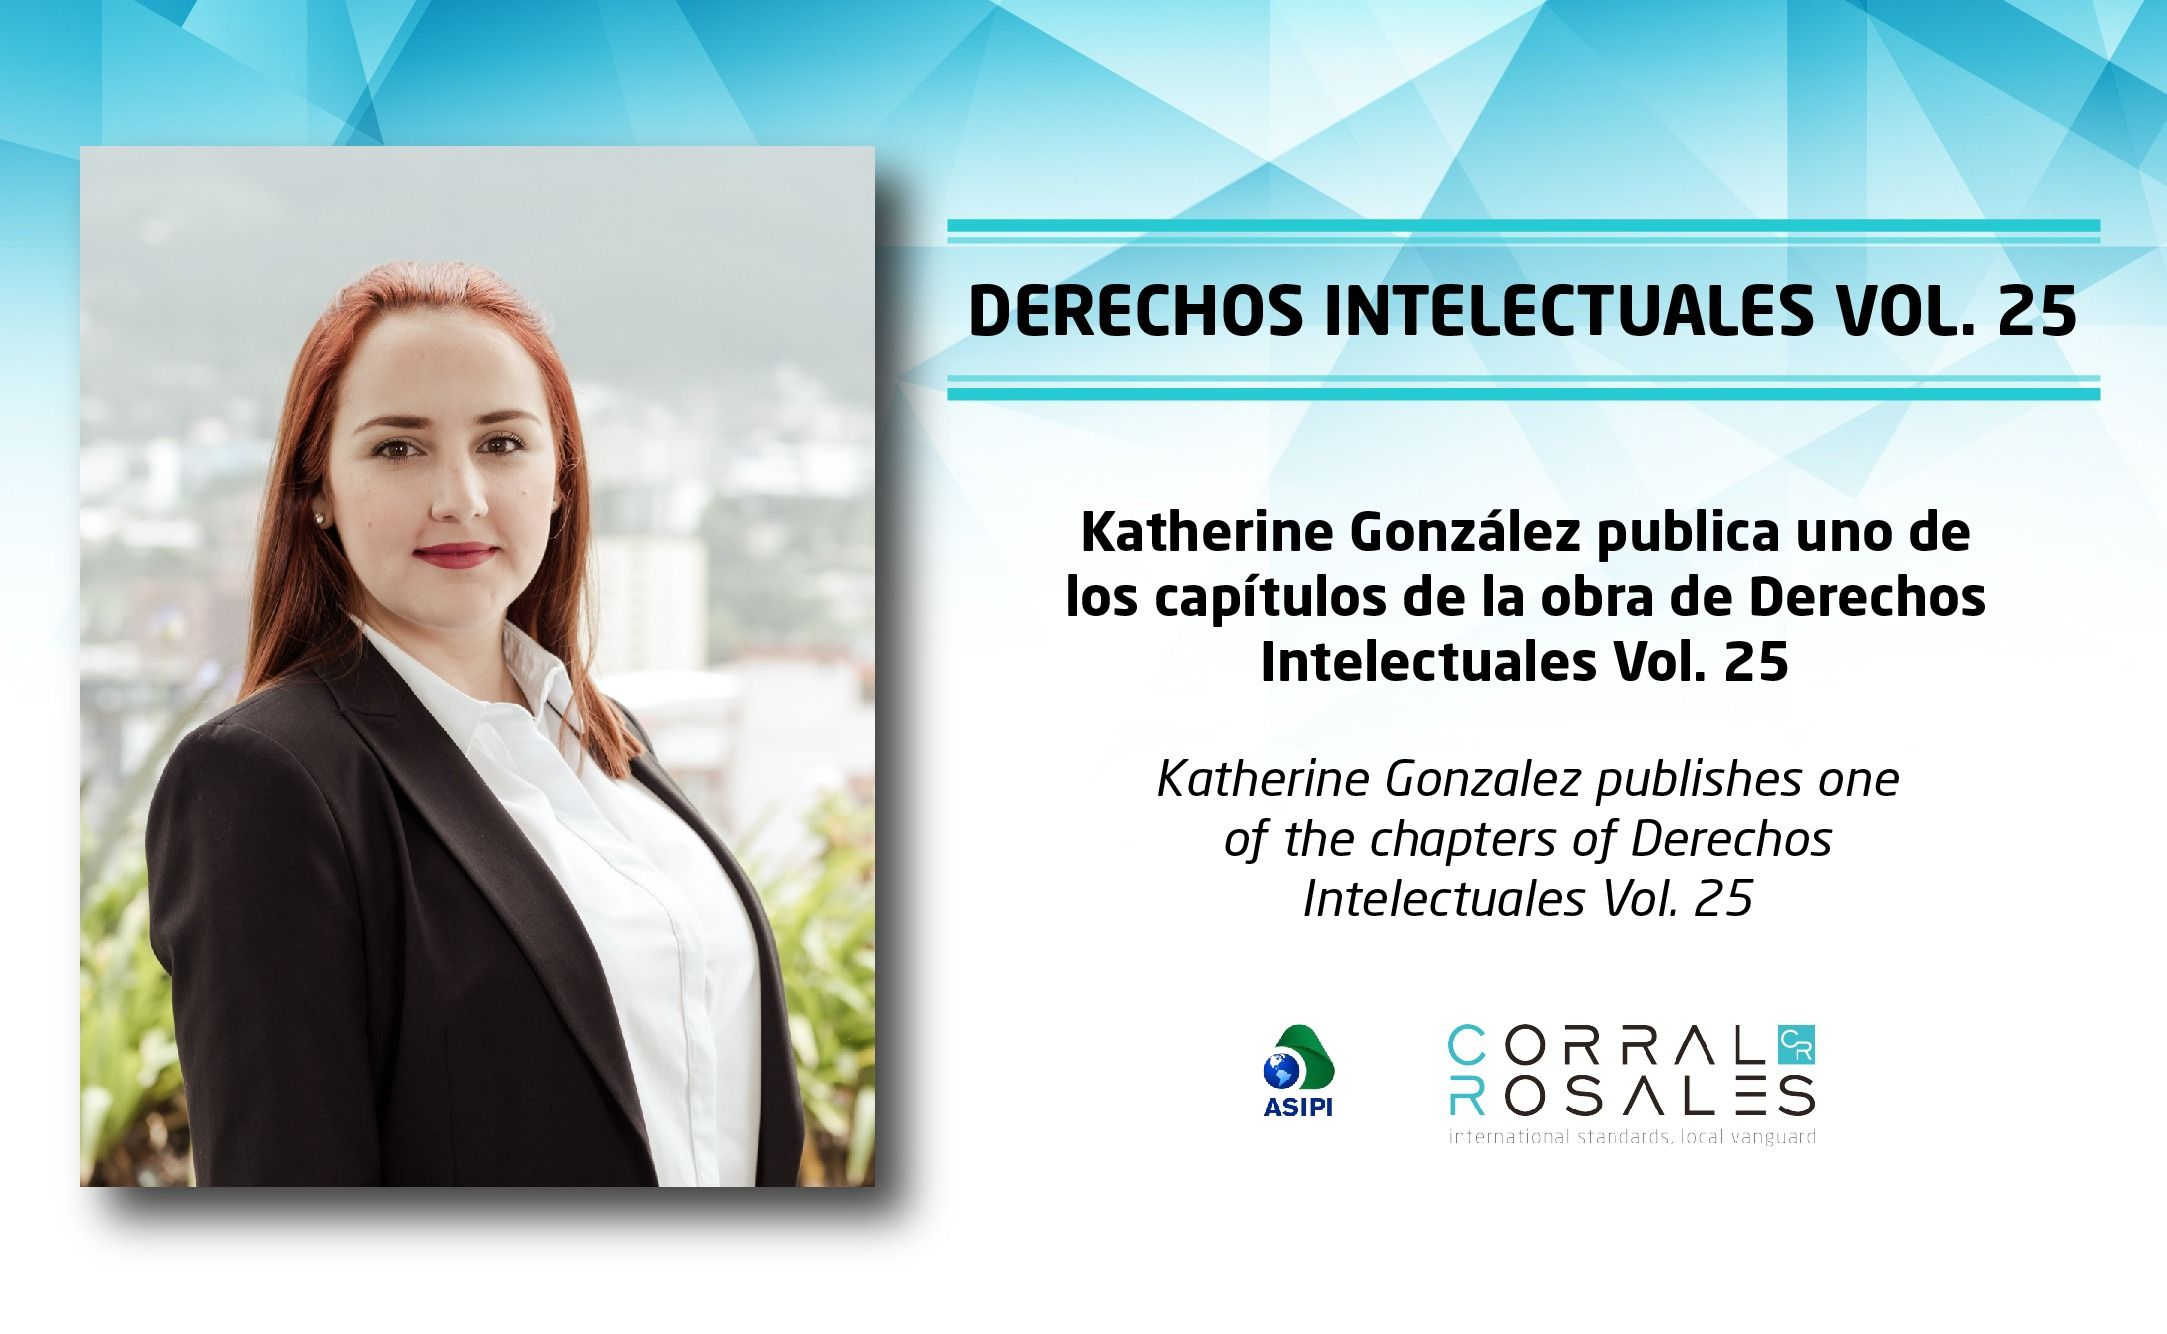 patents-and-licenses-mandatory-rights-intellectual-katherine-gonzalez-lawyers-ecuador